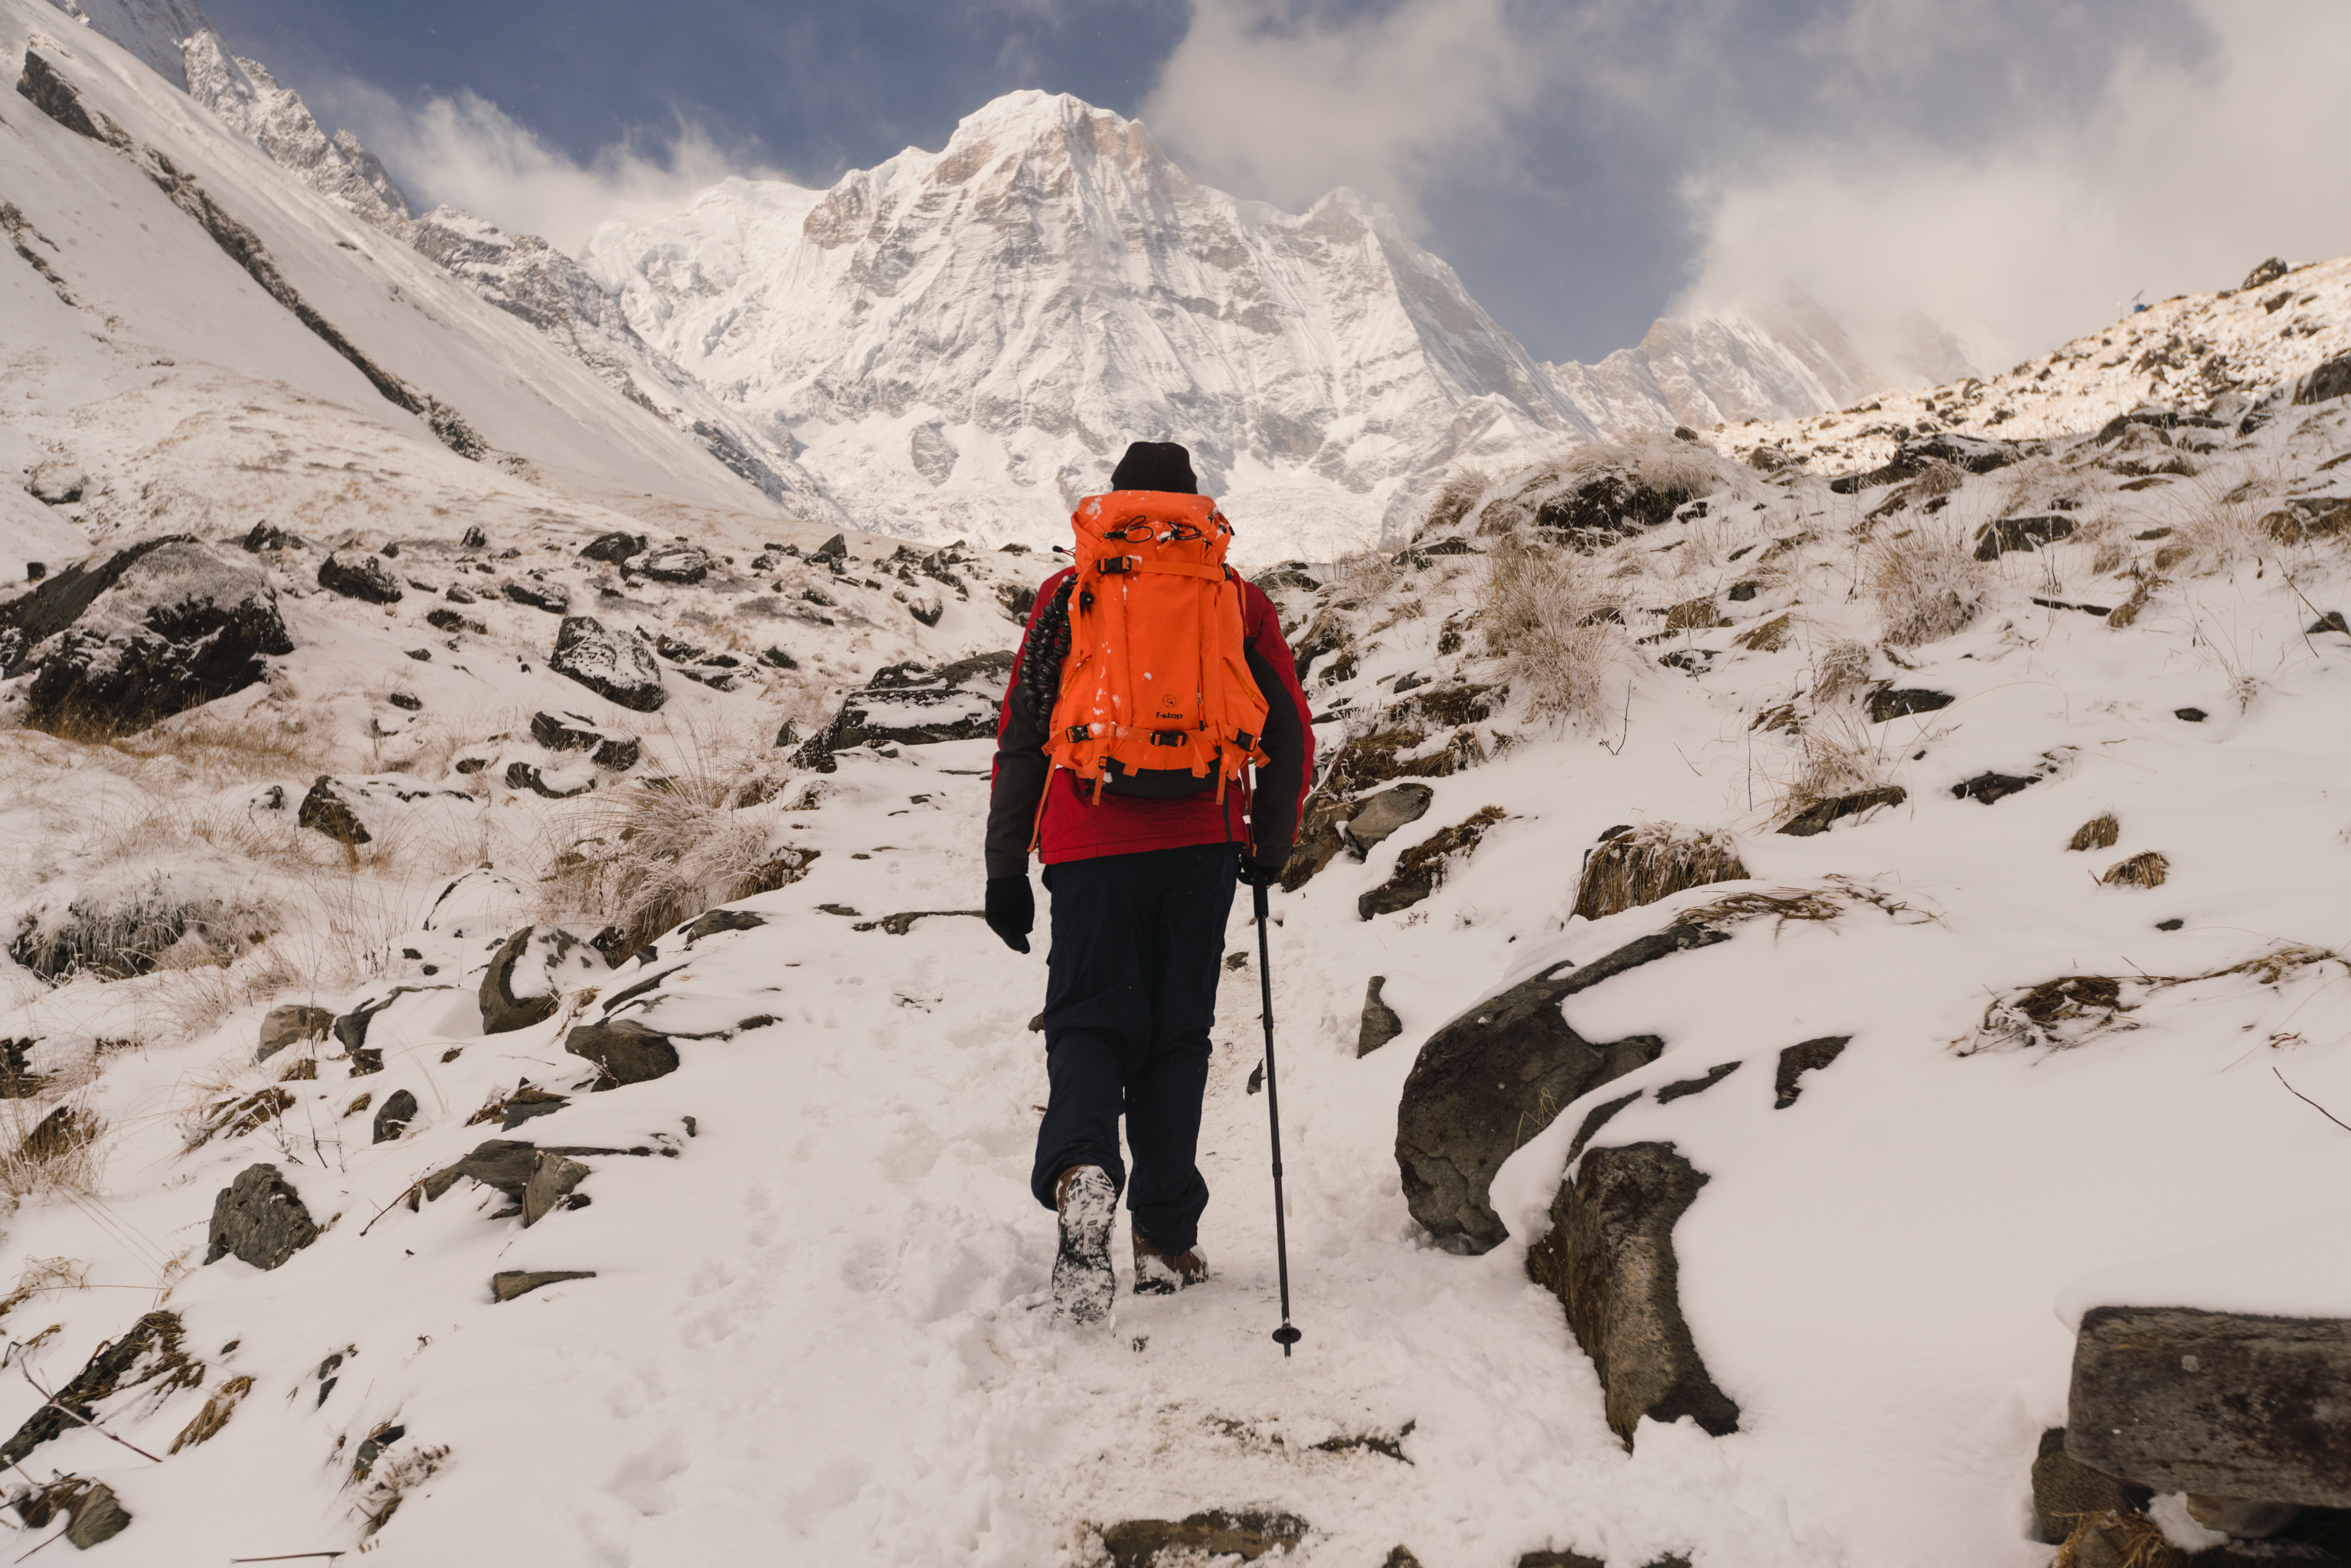 Hiking the Himalayas By Jacques Crafford